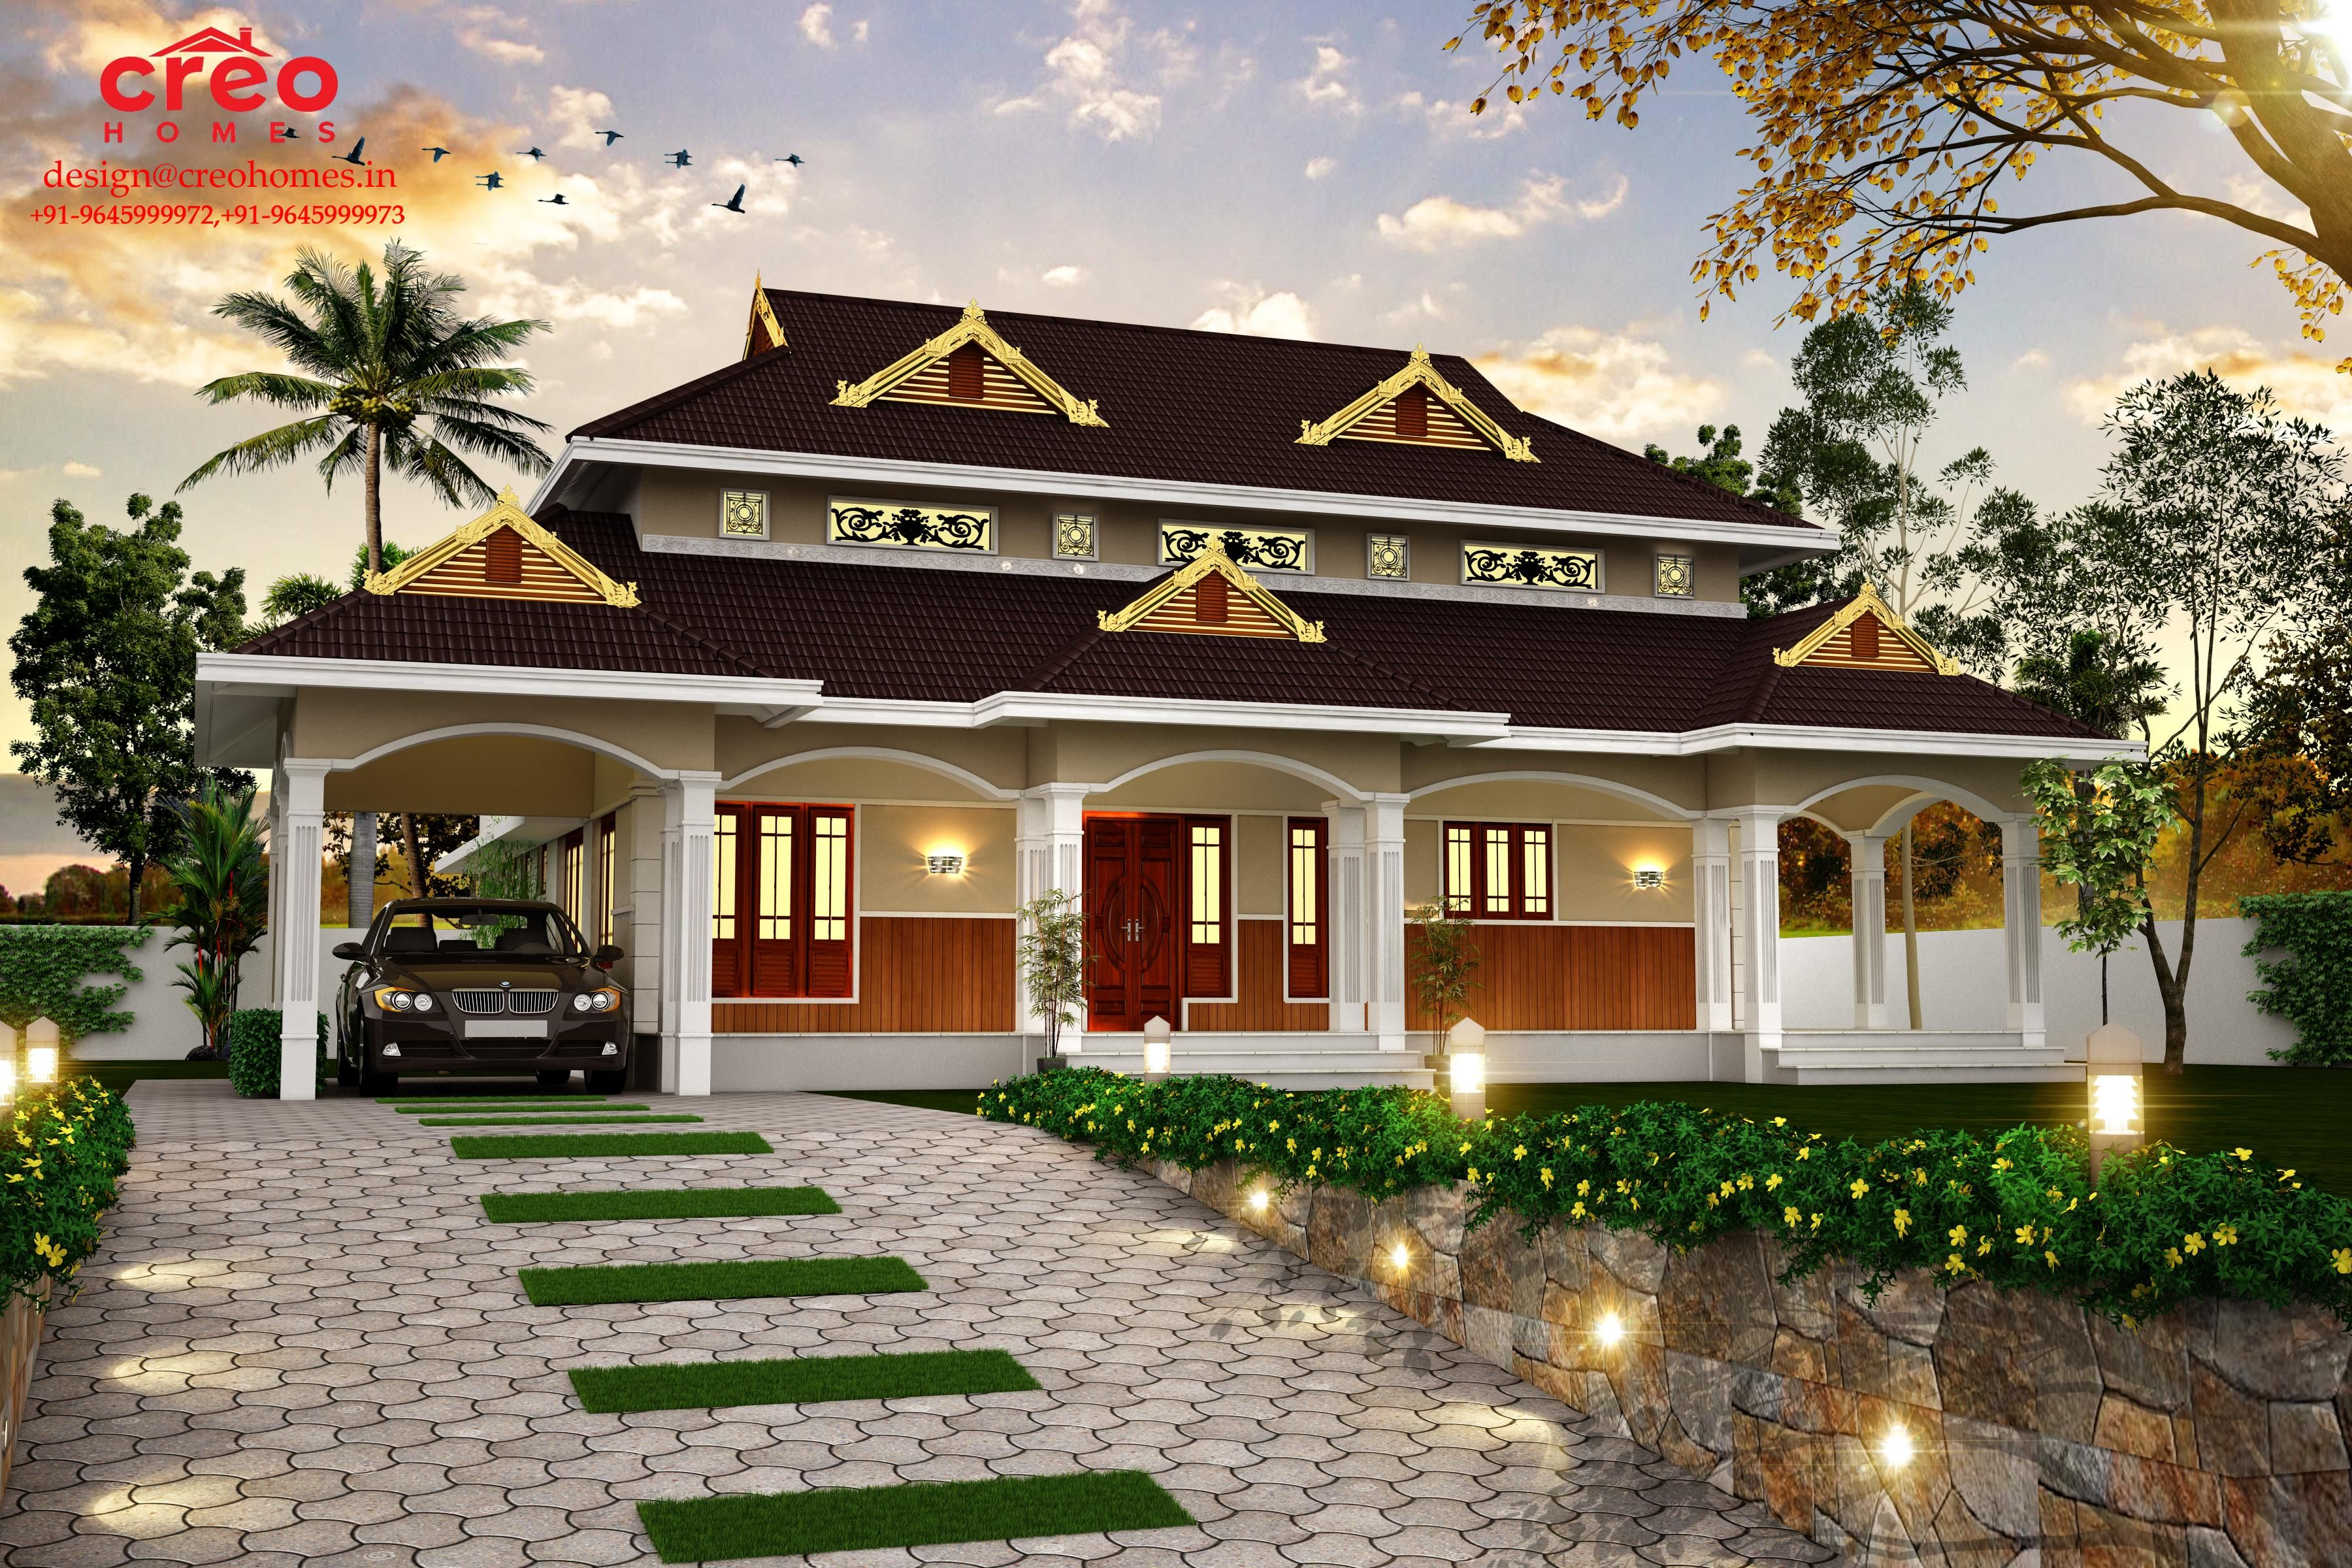 Creo Homes Provides A Unique Solution In The Field Of Architectural And Interiors In Kerala And